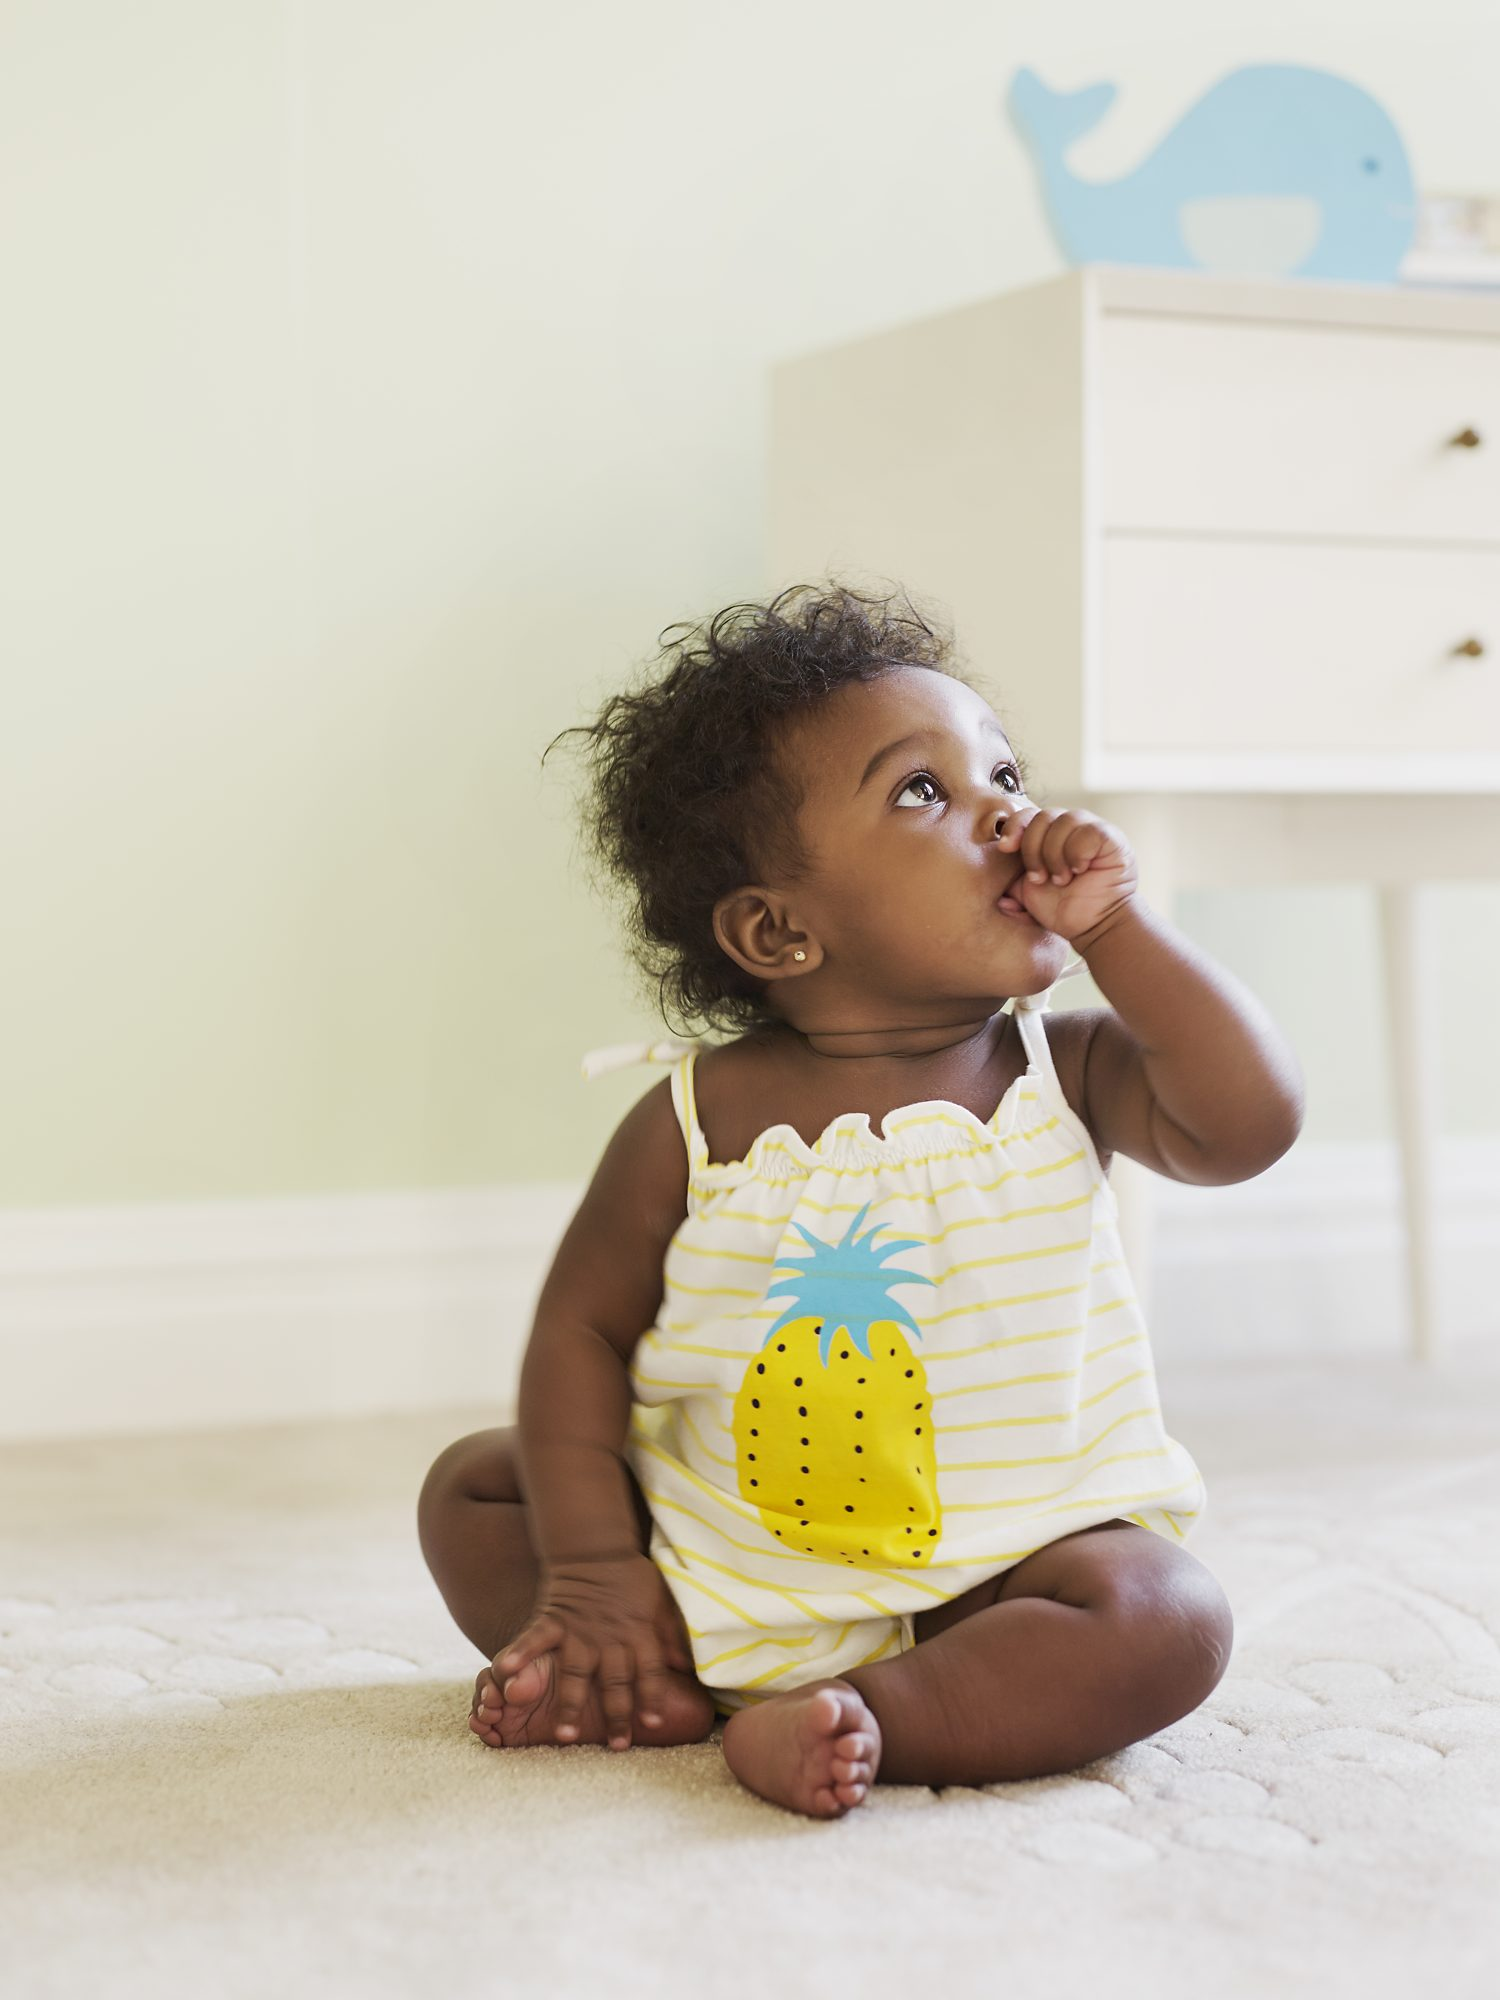 Baby in Cute Pineapple Dress